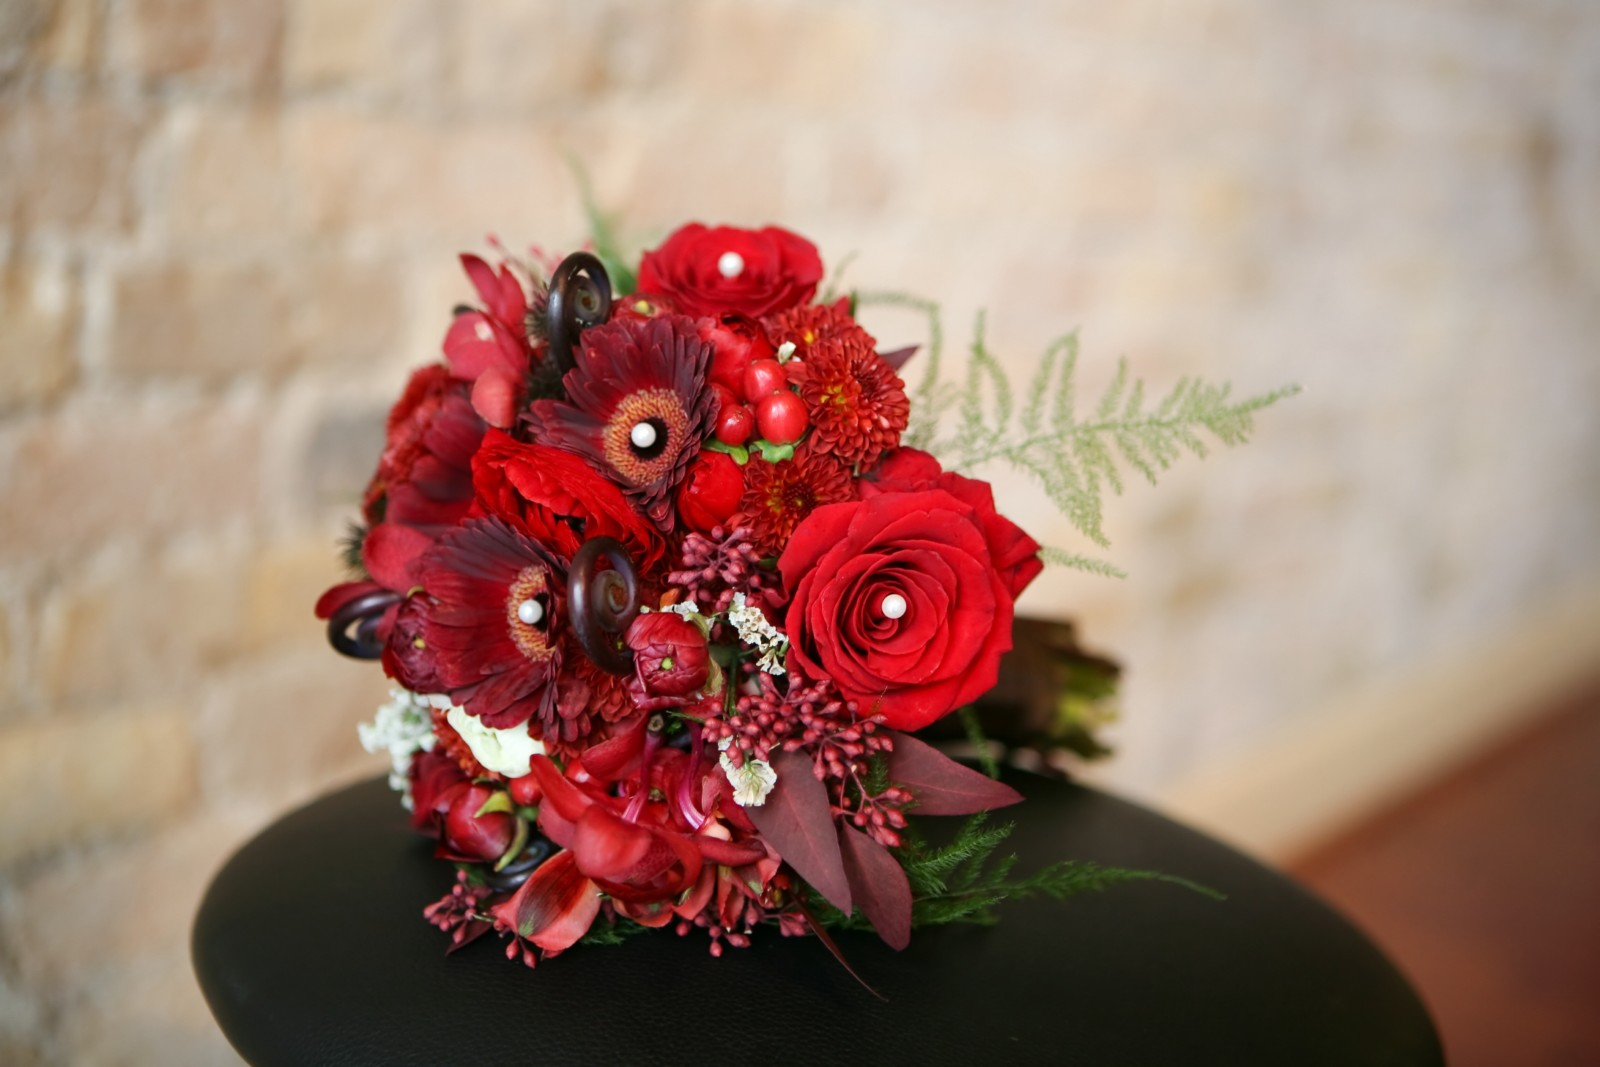 Shades fo Red and Ivory Flowers. Roses, Gerberas, Chrysanthemums, Seeded Eucalyptus, Plumosa, Hypericum Berries